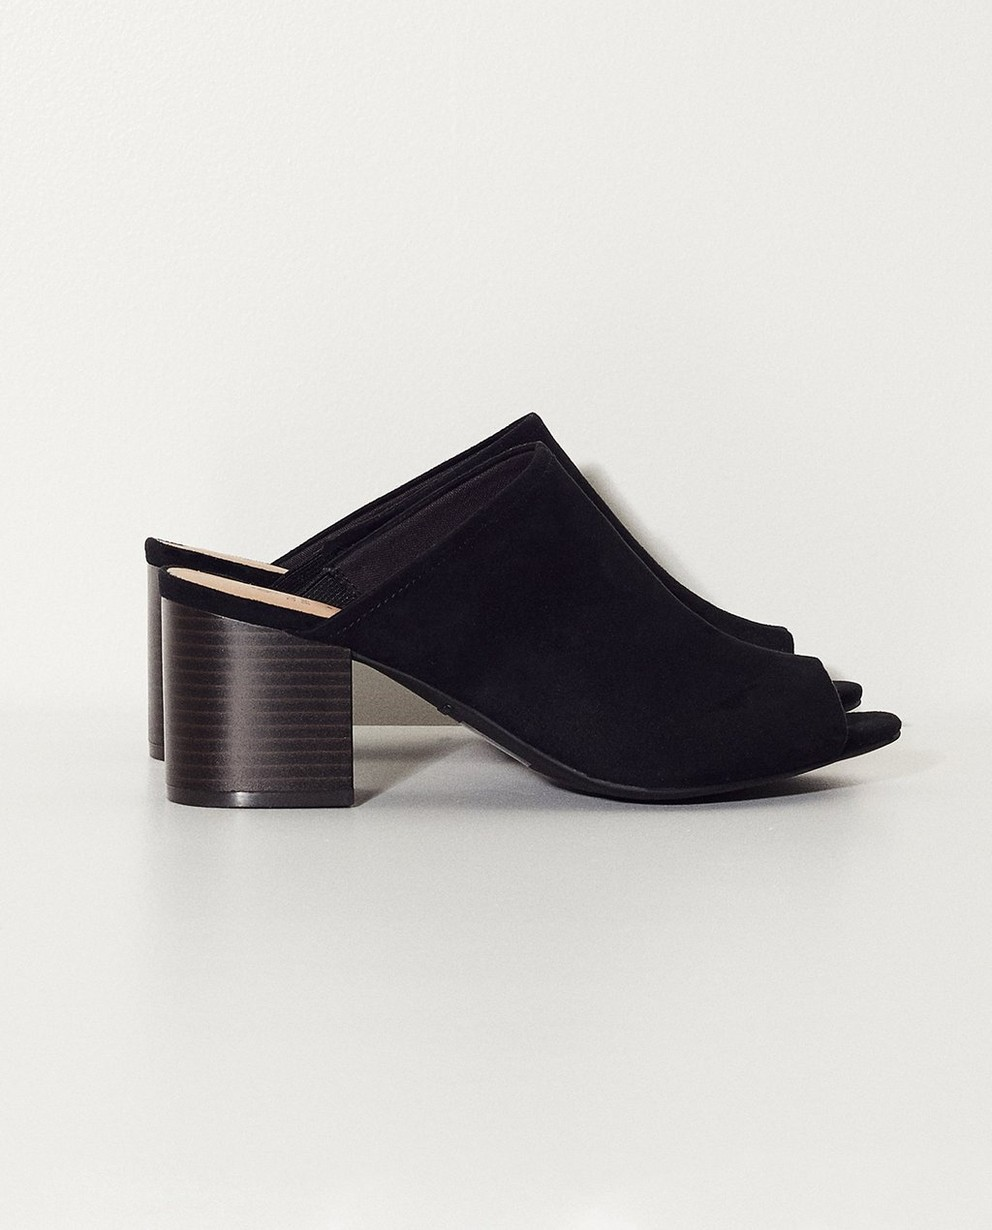 Mules - pointe ouverte - Call it Spring